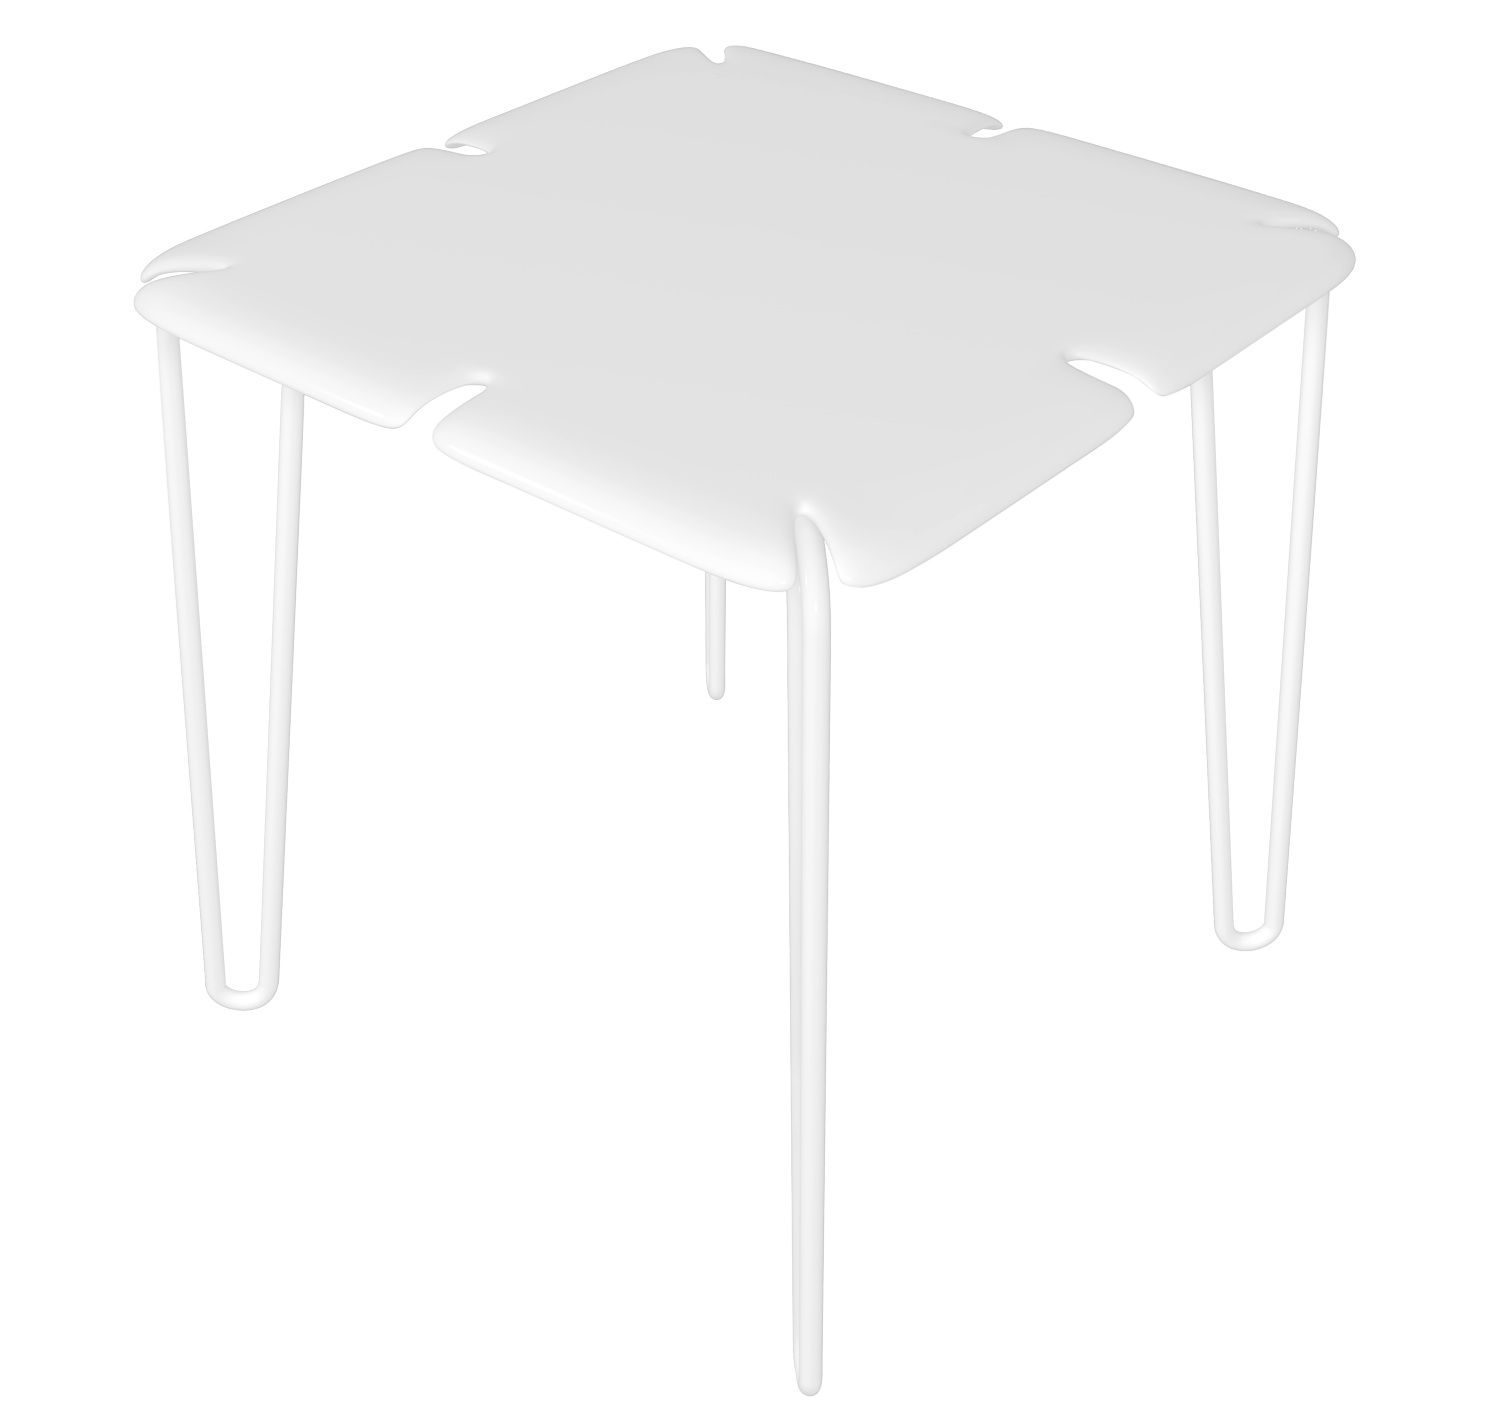 Outdoor - Garden Tables - Chips Table - Table by MyYour - White - Corian - Corian, Painted stainless steel